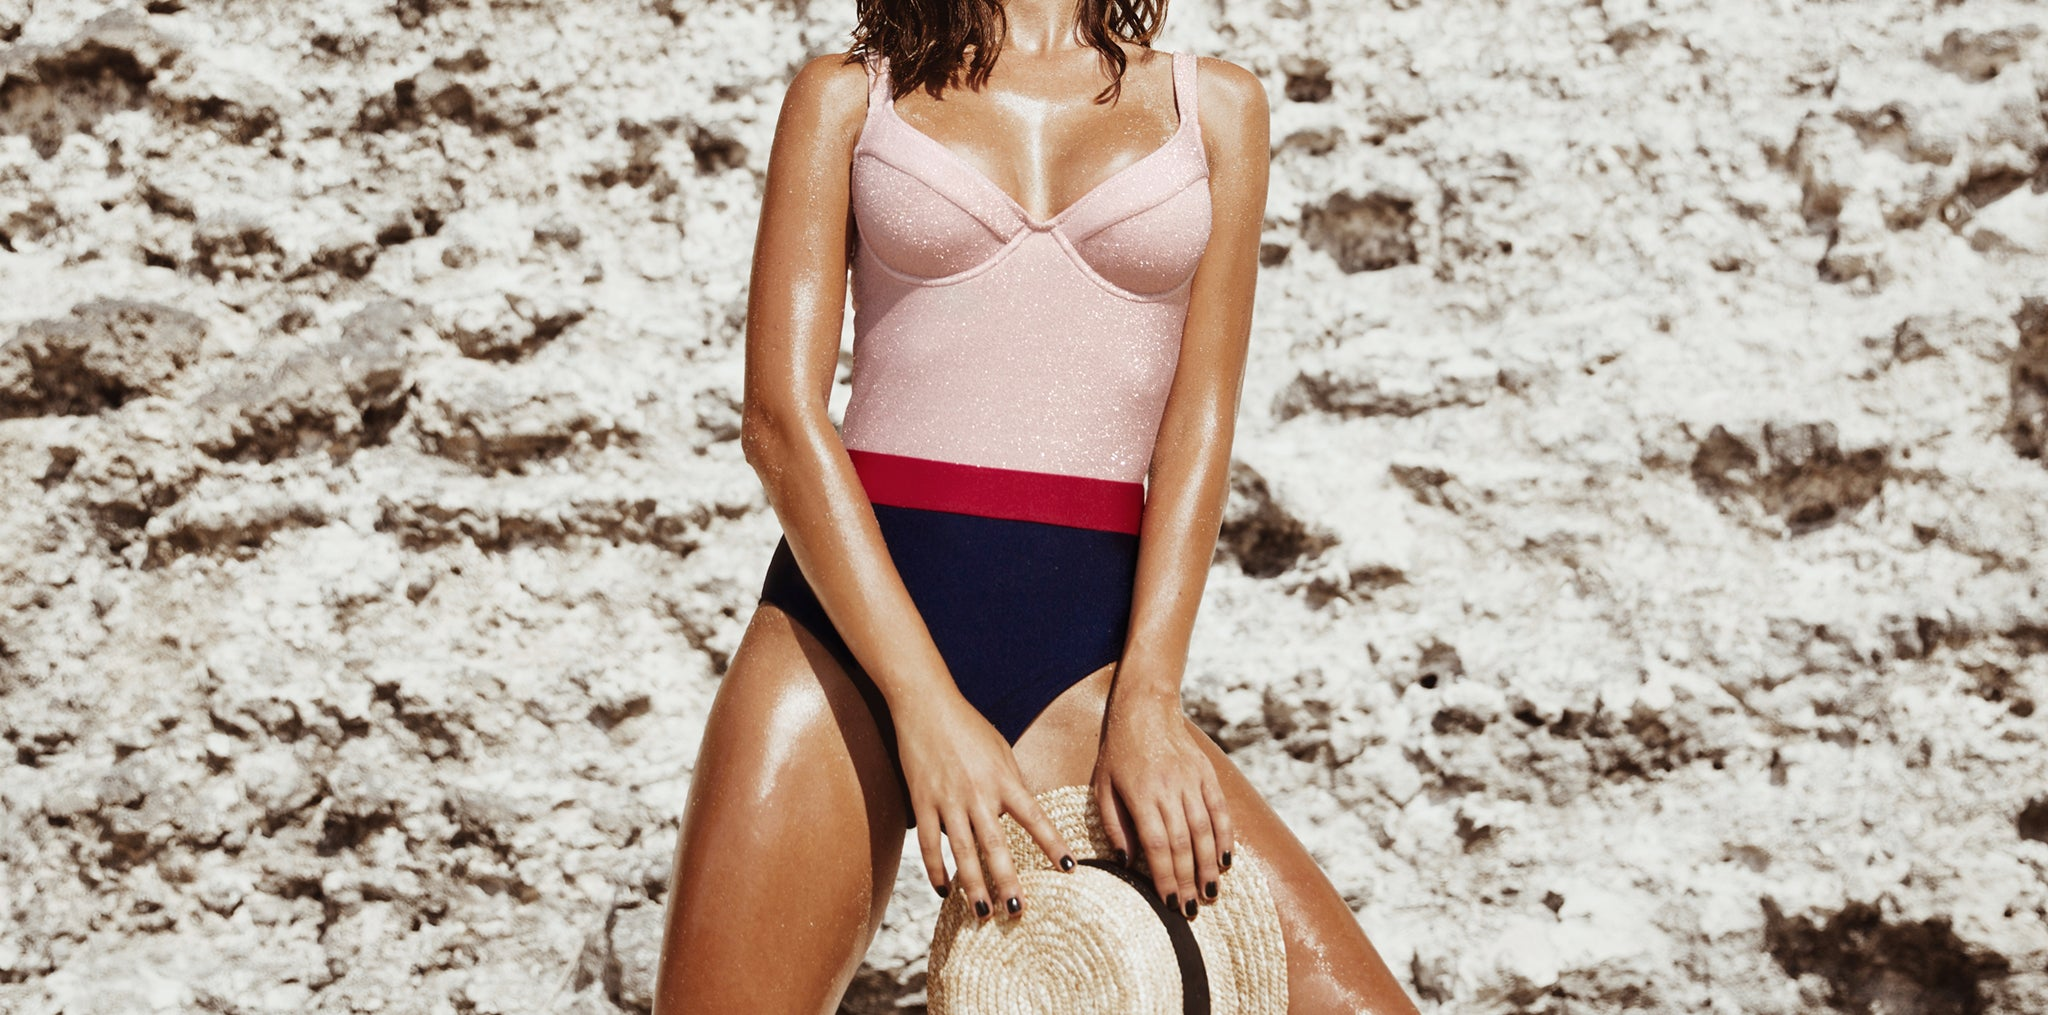 Indaia Swim take on the nautical trend in this iconic one piece mixing pink lurex with red and navy shiny lycra